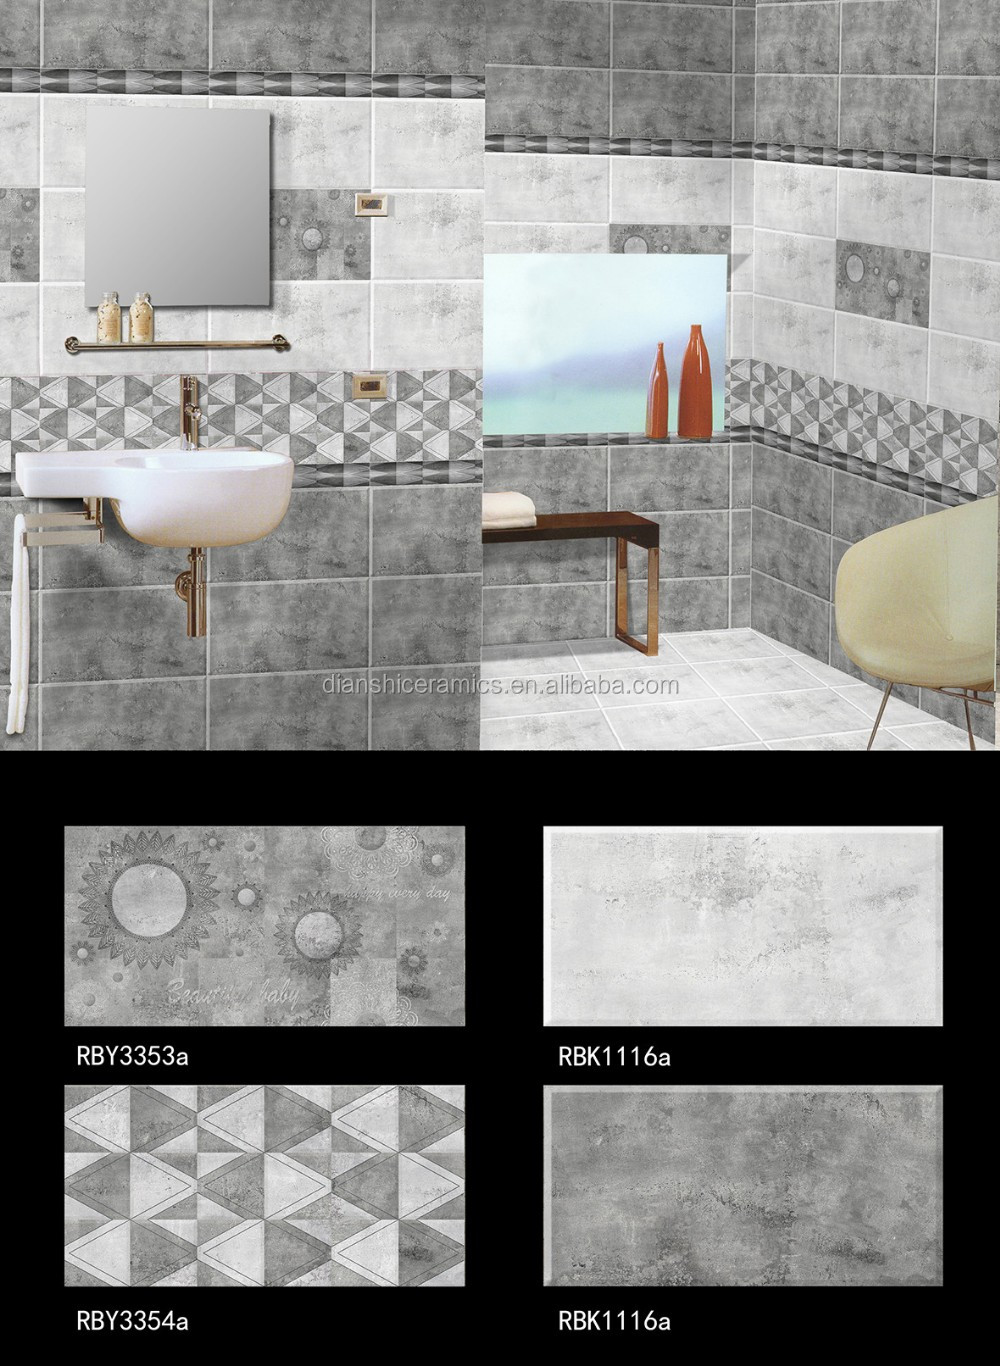 12x24 ceramic tile for bathroom designbathroom tile china 12x24 ceramic tile for bathroom design bathroom tile china supplier dailygadgetfo Choice Image